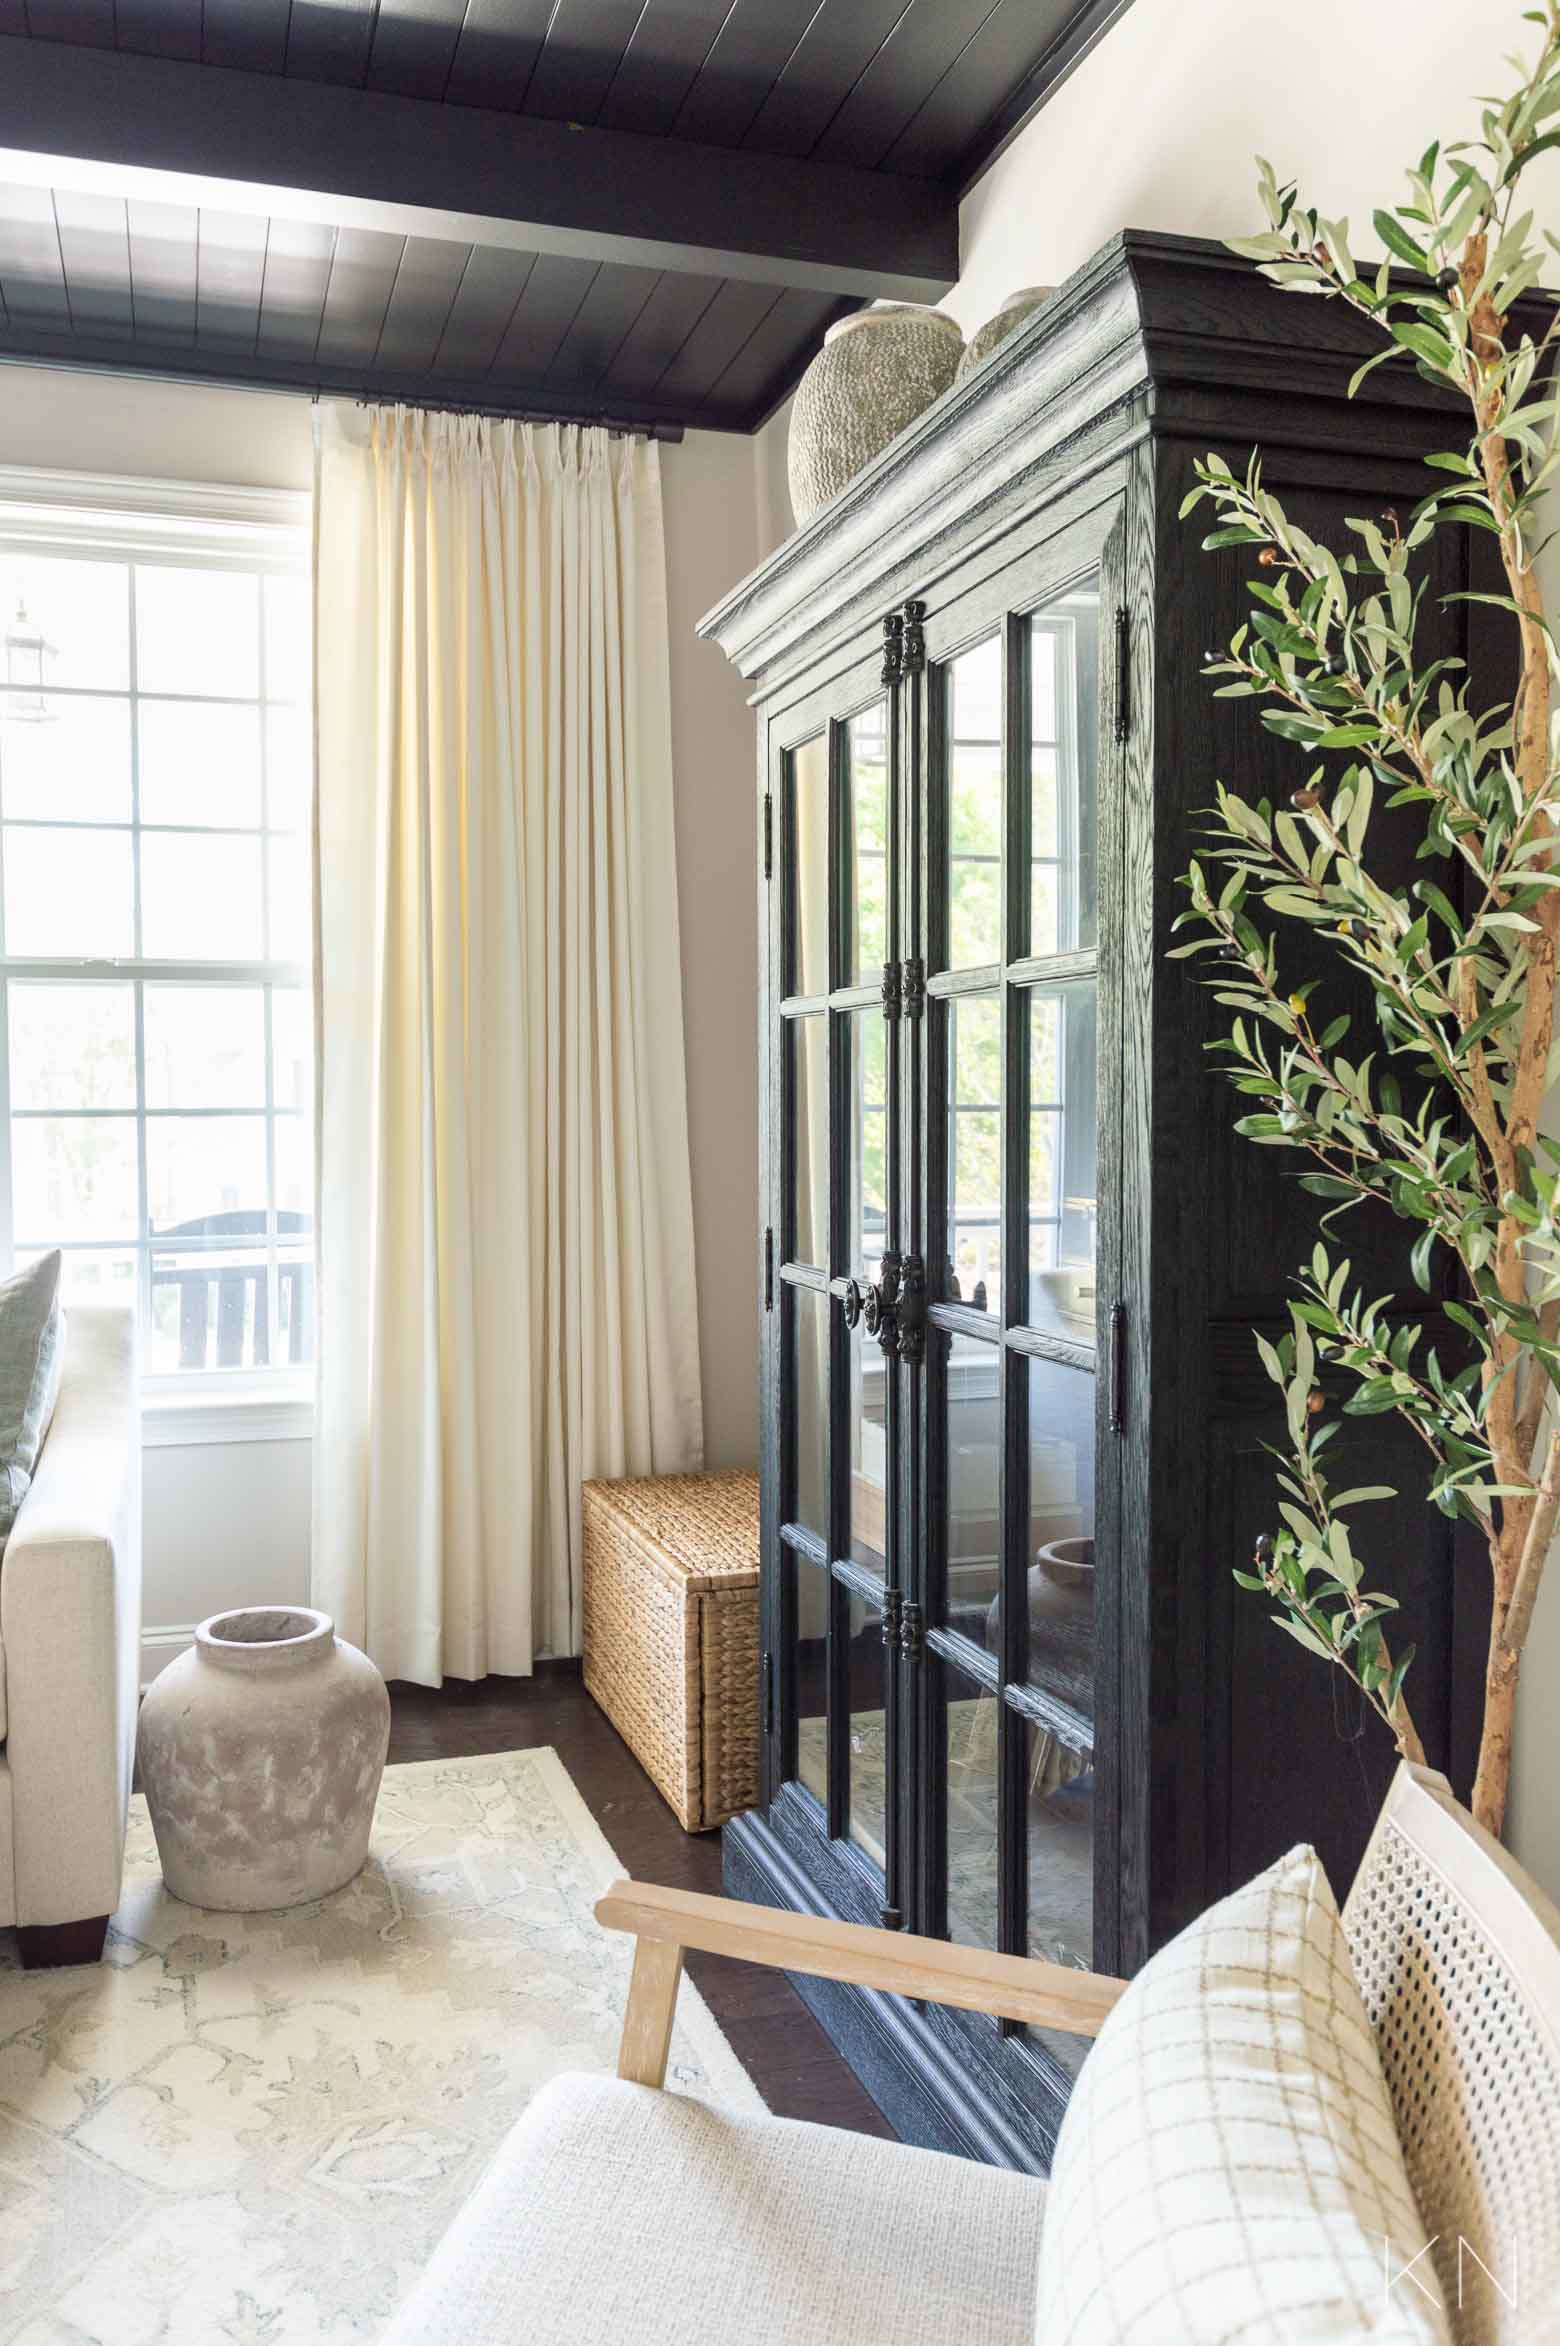 West Elm Curtain Rod - The Favorite Modern Way to Hang Custom Curtains